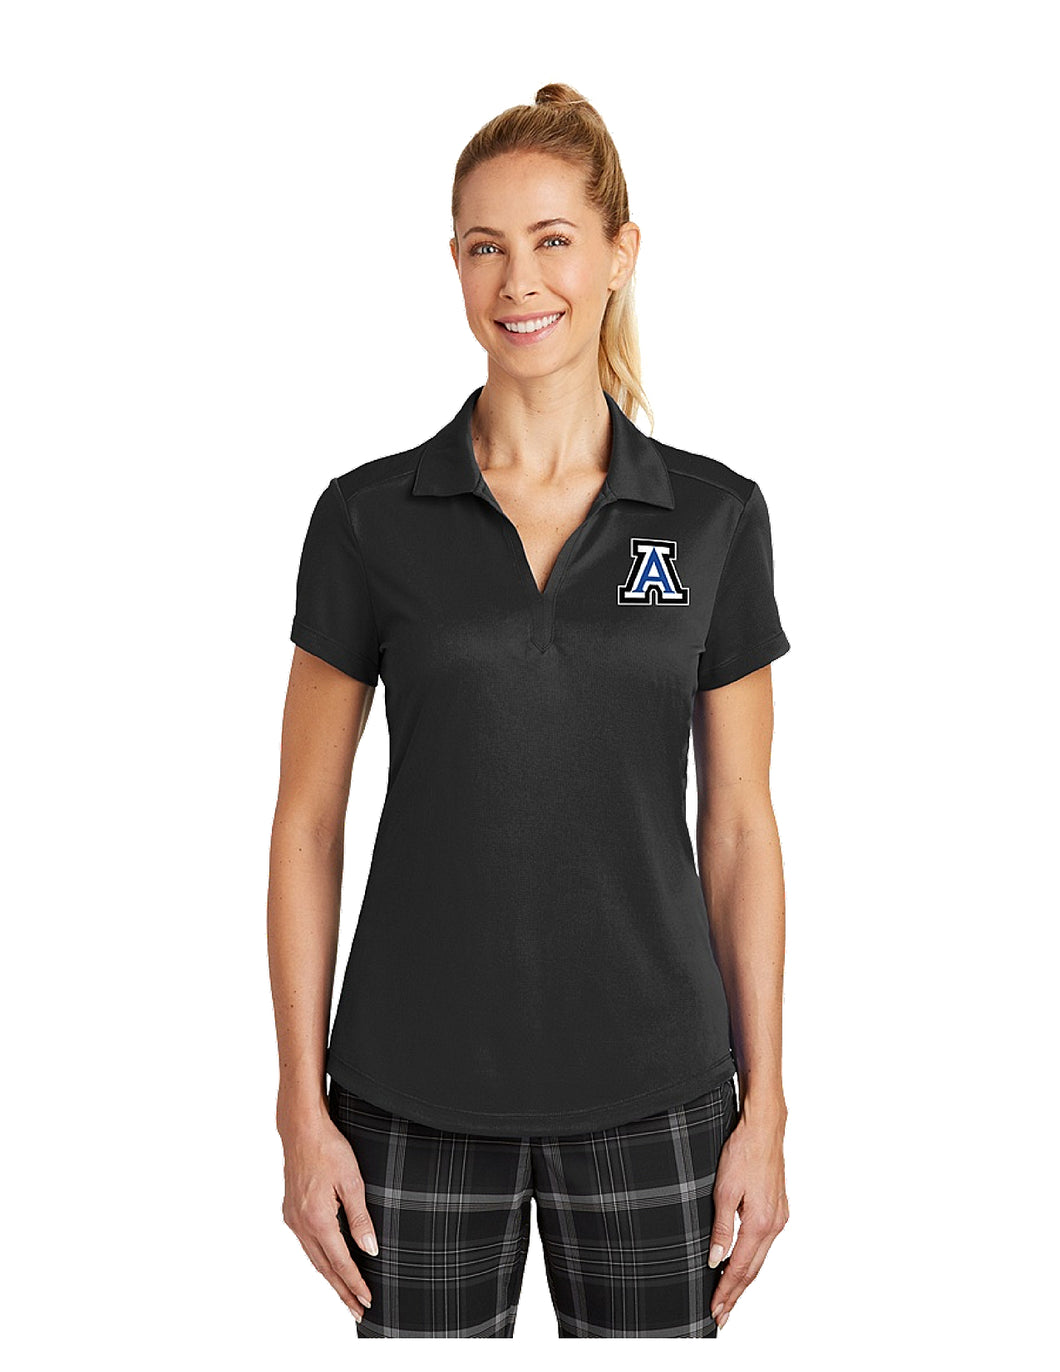 Nike Dri-FIT Legacy Ladies Polo Black with Embroidered Acalanes